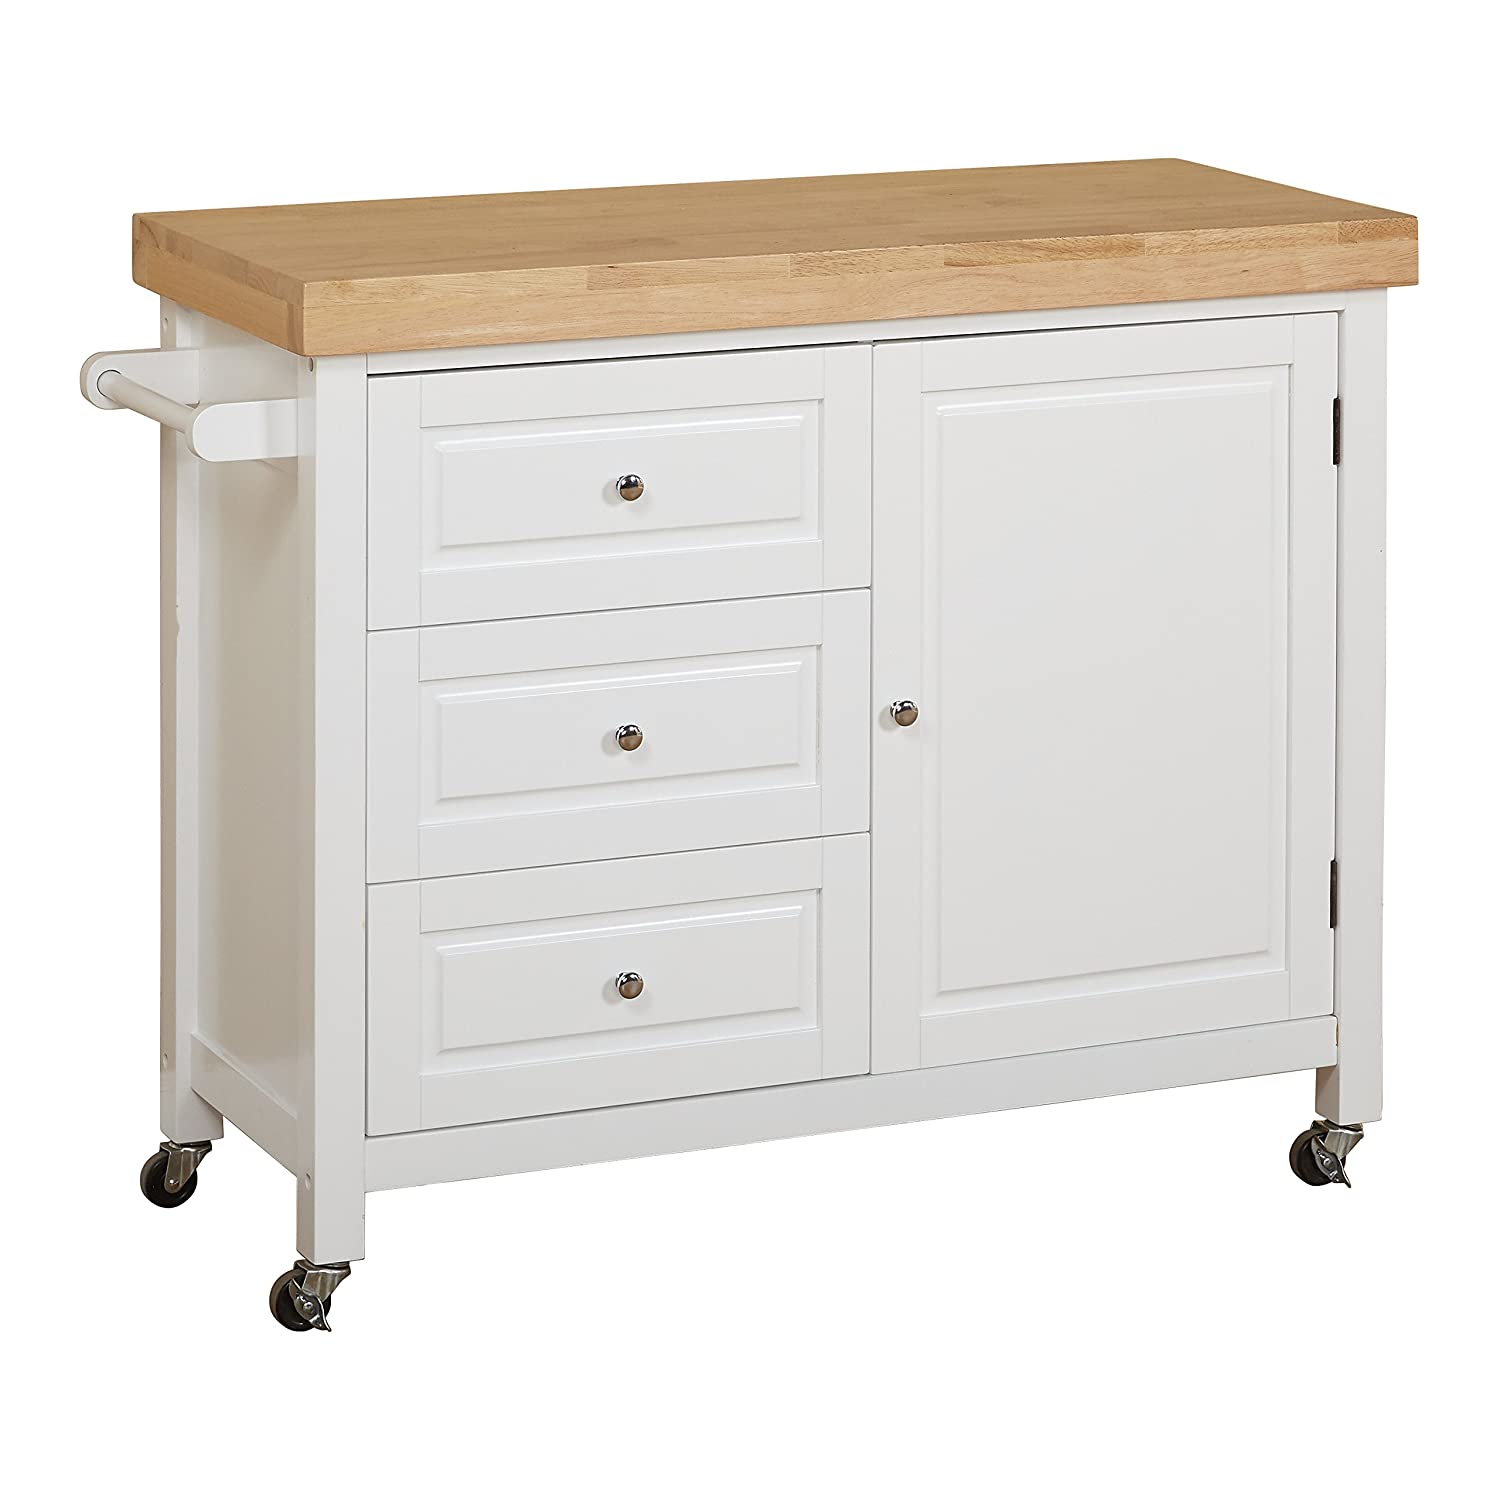 Target Marketing Systems Monterey Wood Top Kitchen Buffet Cabinet With Three Drawers and Cabinet with Shelf With Towel Bar on Caster Wheels, Espresso 20550ESP